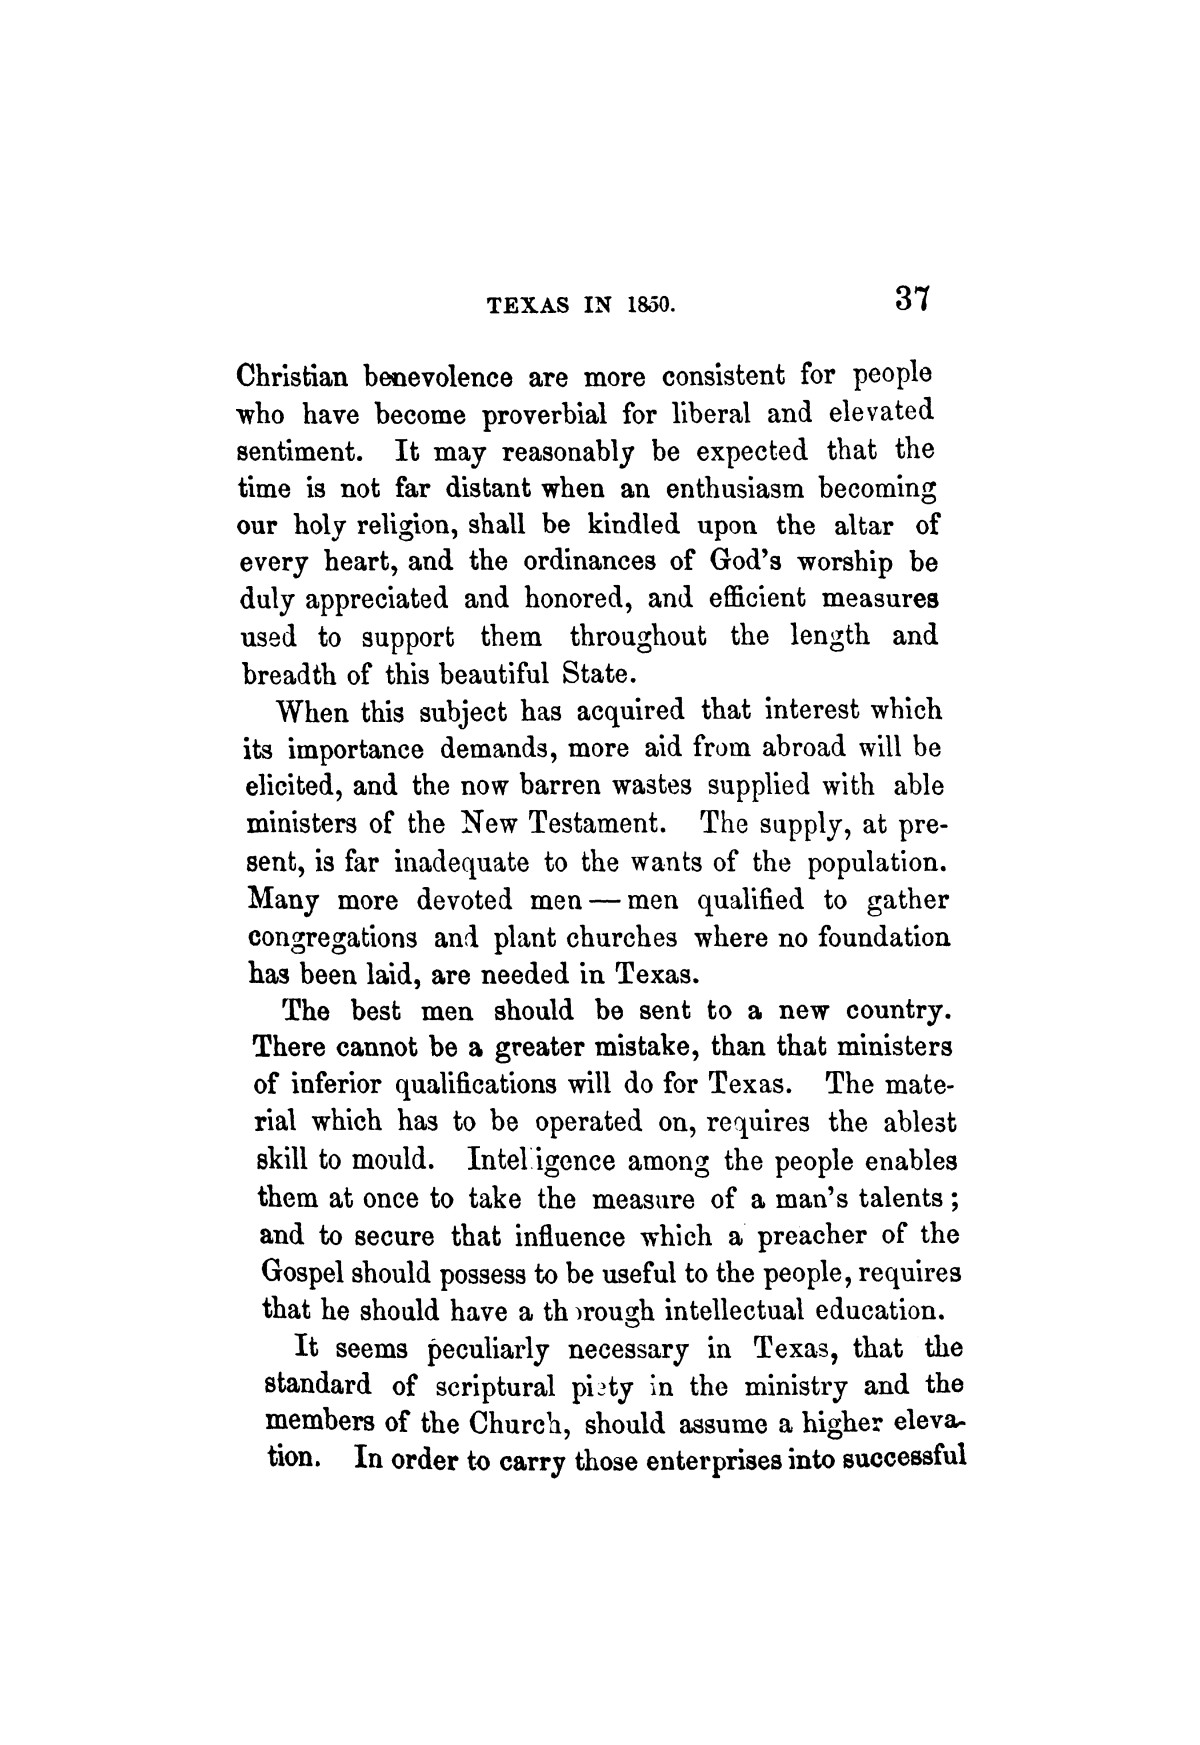 Texas in 1850. By Melinda Rankin.                                                                                                      [Sequence #]: 34 of 196